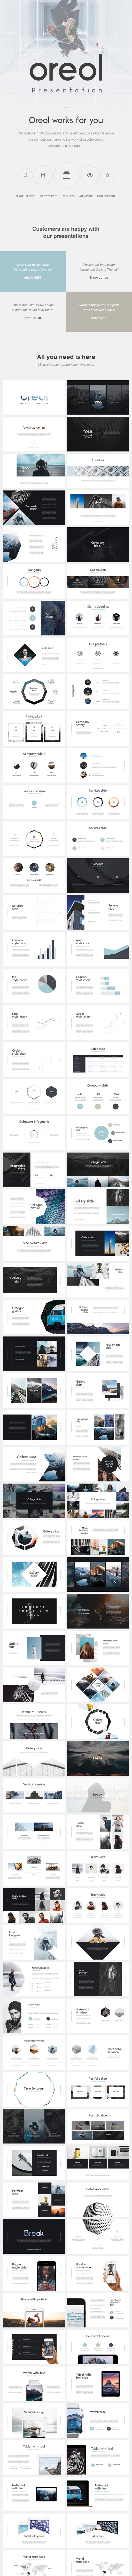 Oreol - Creative Business PowerPoint Template - Business PowerPoint Templates